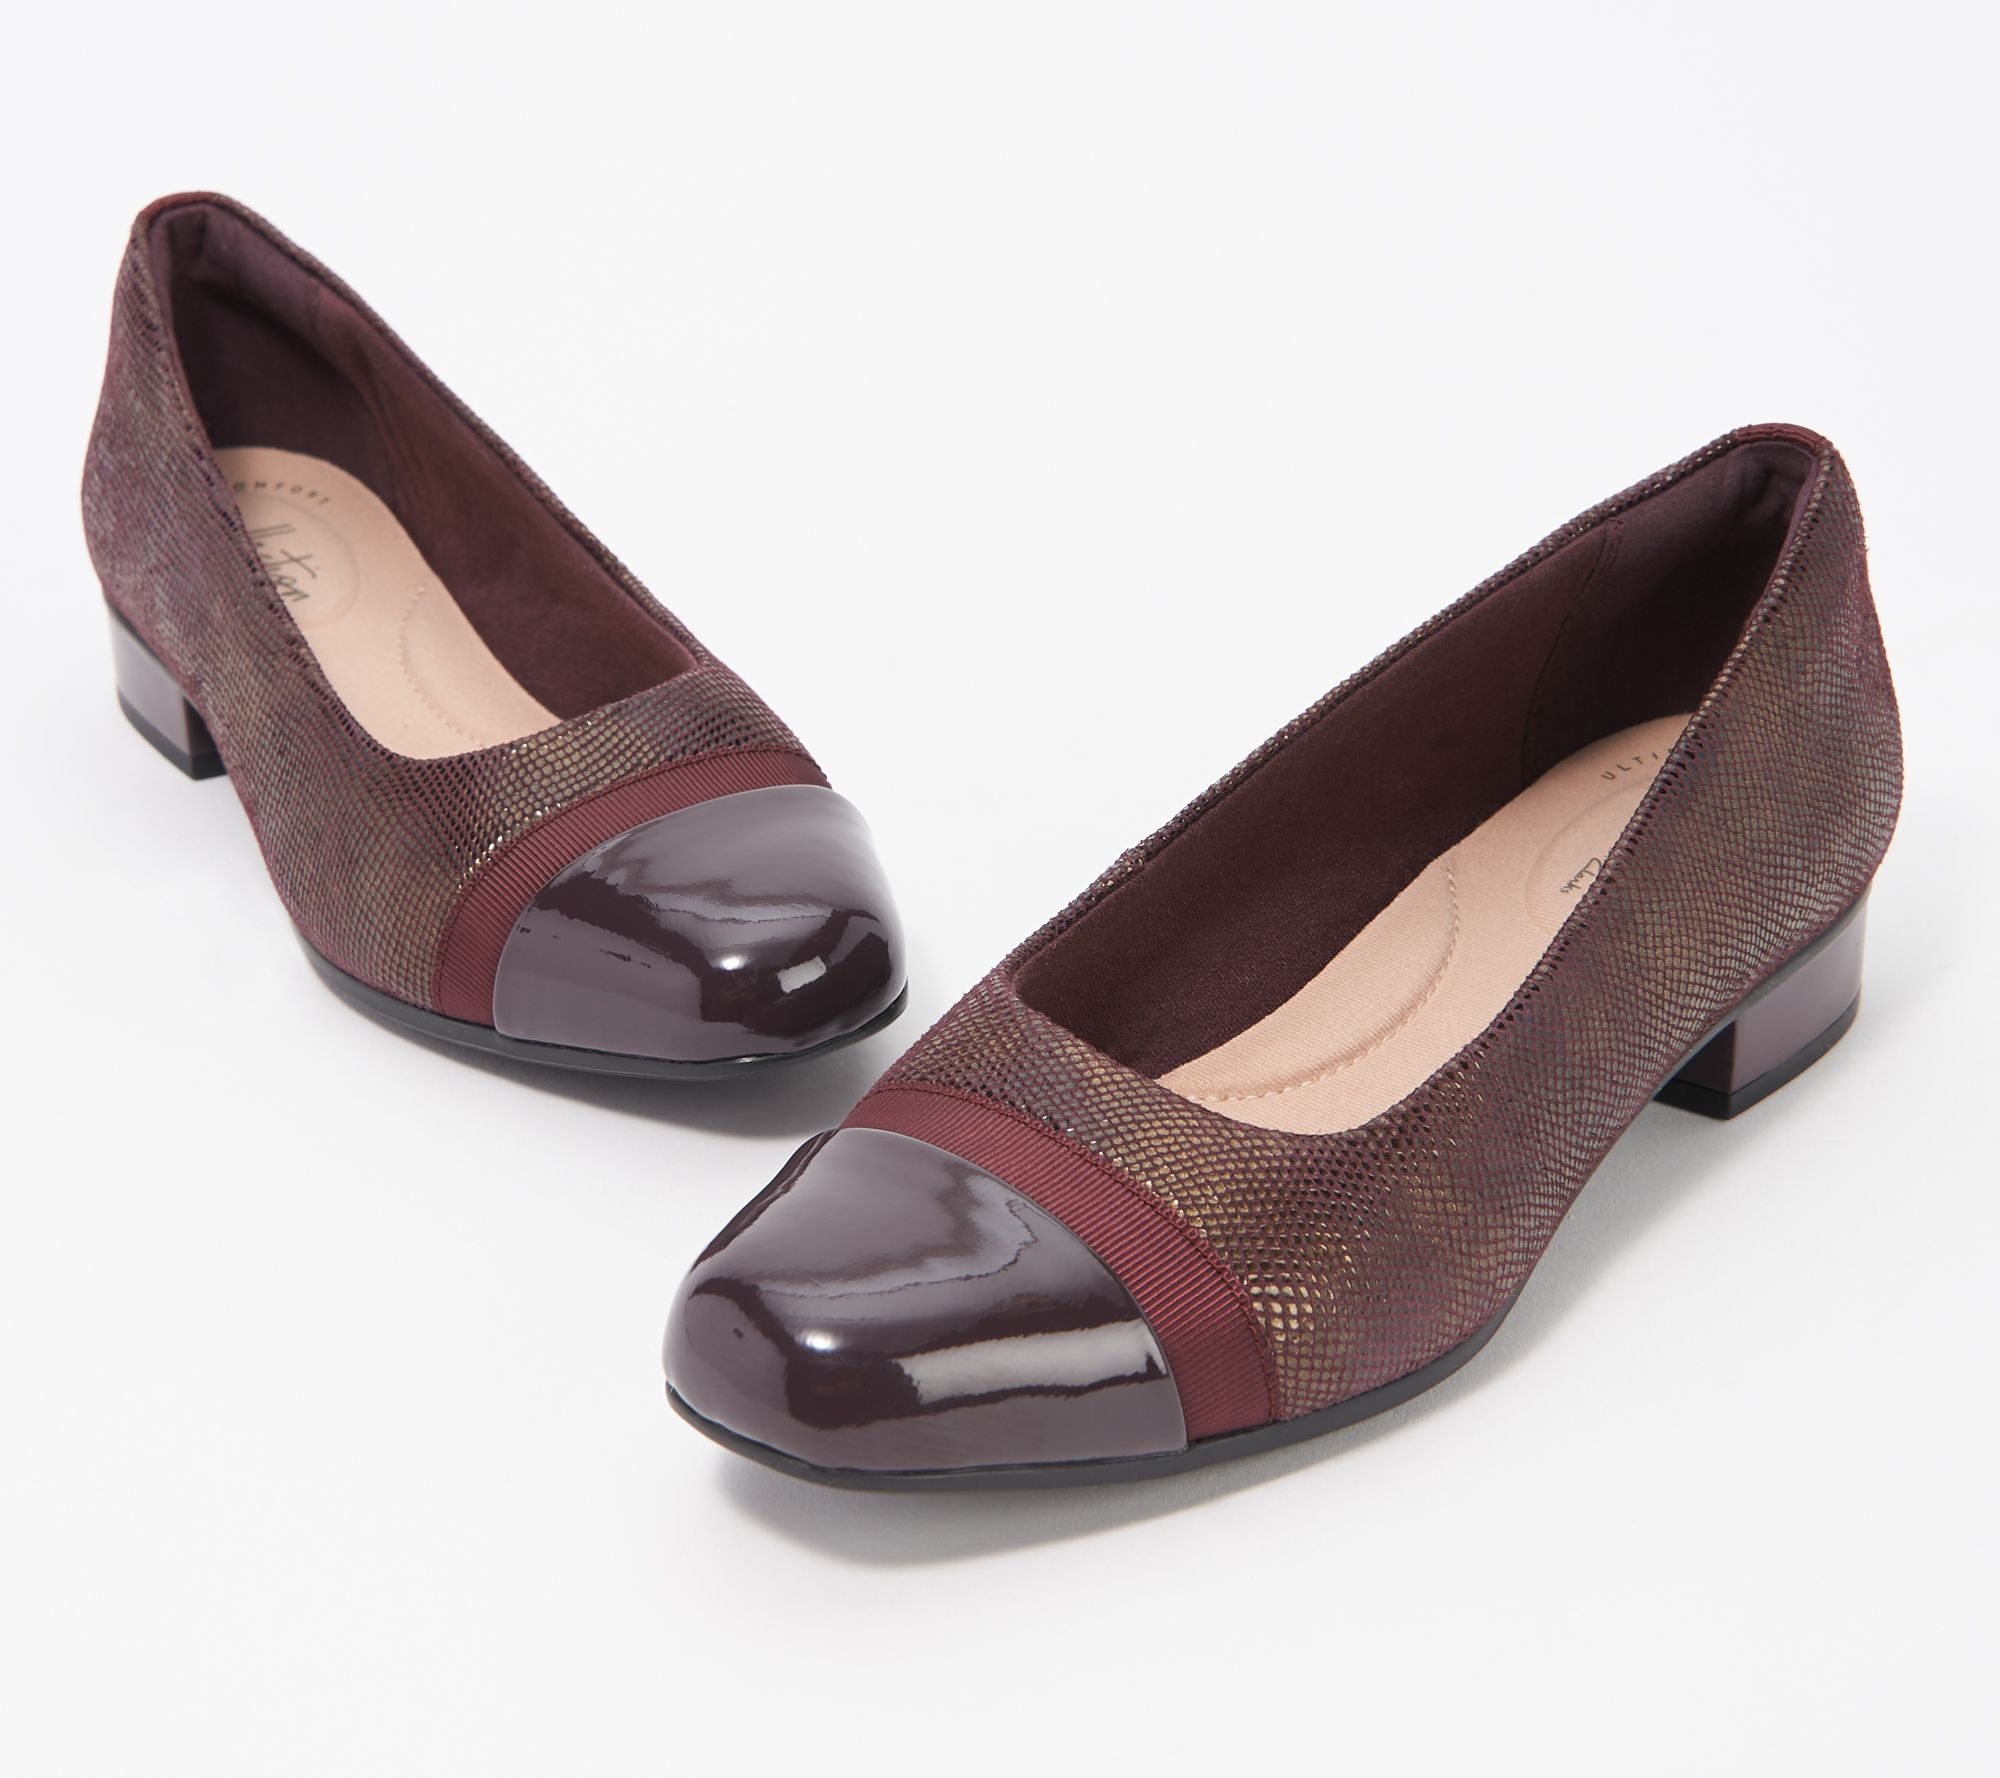 Franco Sarto Women`s Shoes Mount Chain Patent Leather Suede Flat Shoes 6.5 Black